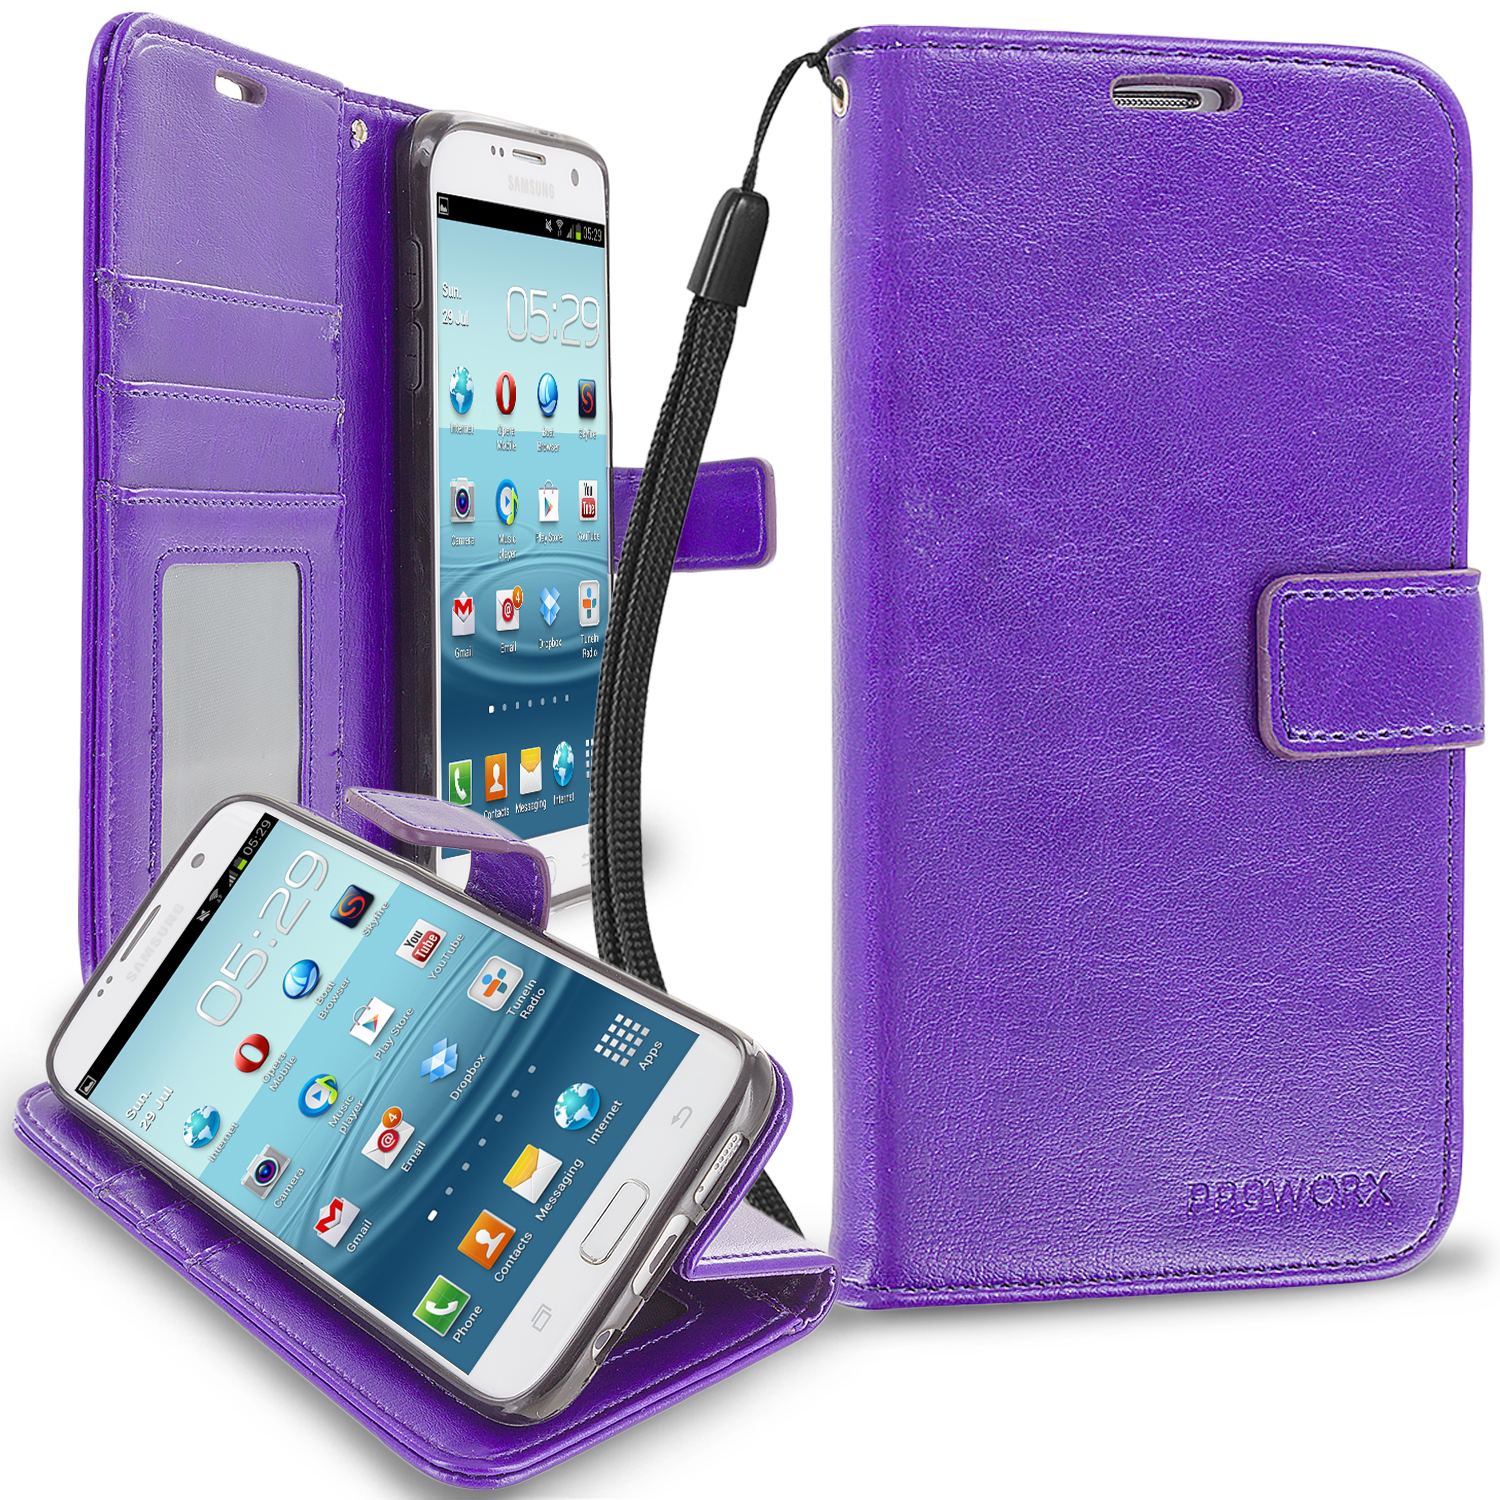 Samsung Galaxy S7 Edge Purple ProWorx Wallet Case Luxury PU Leather Case Cover With Card Slots & Stand